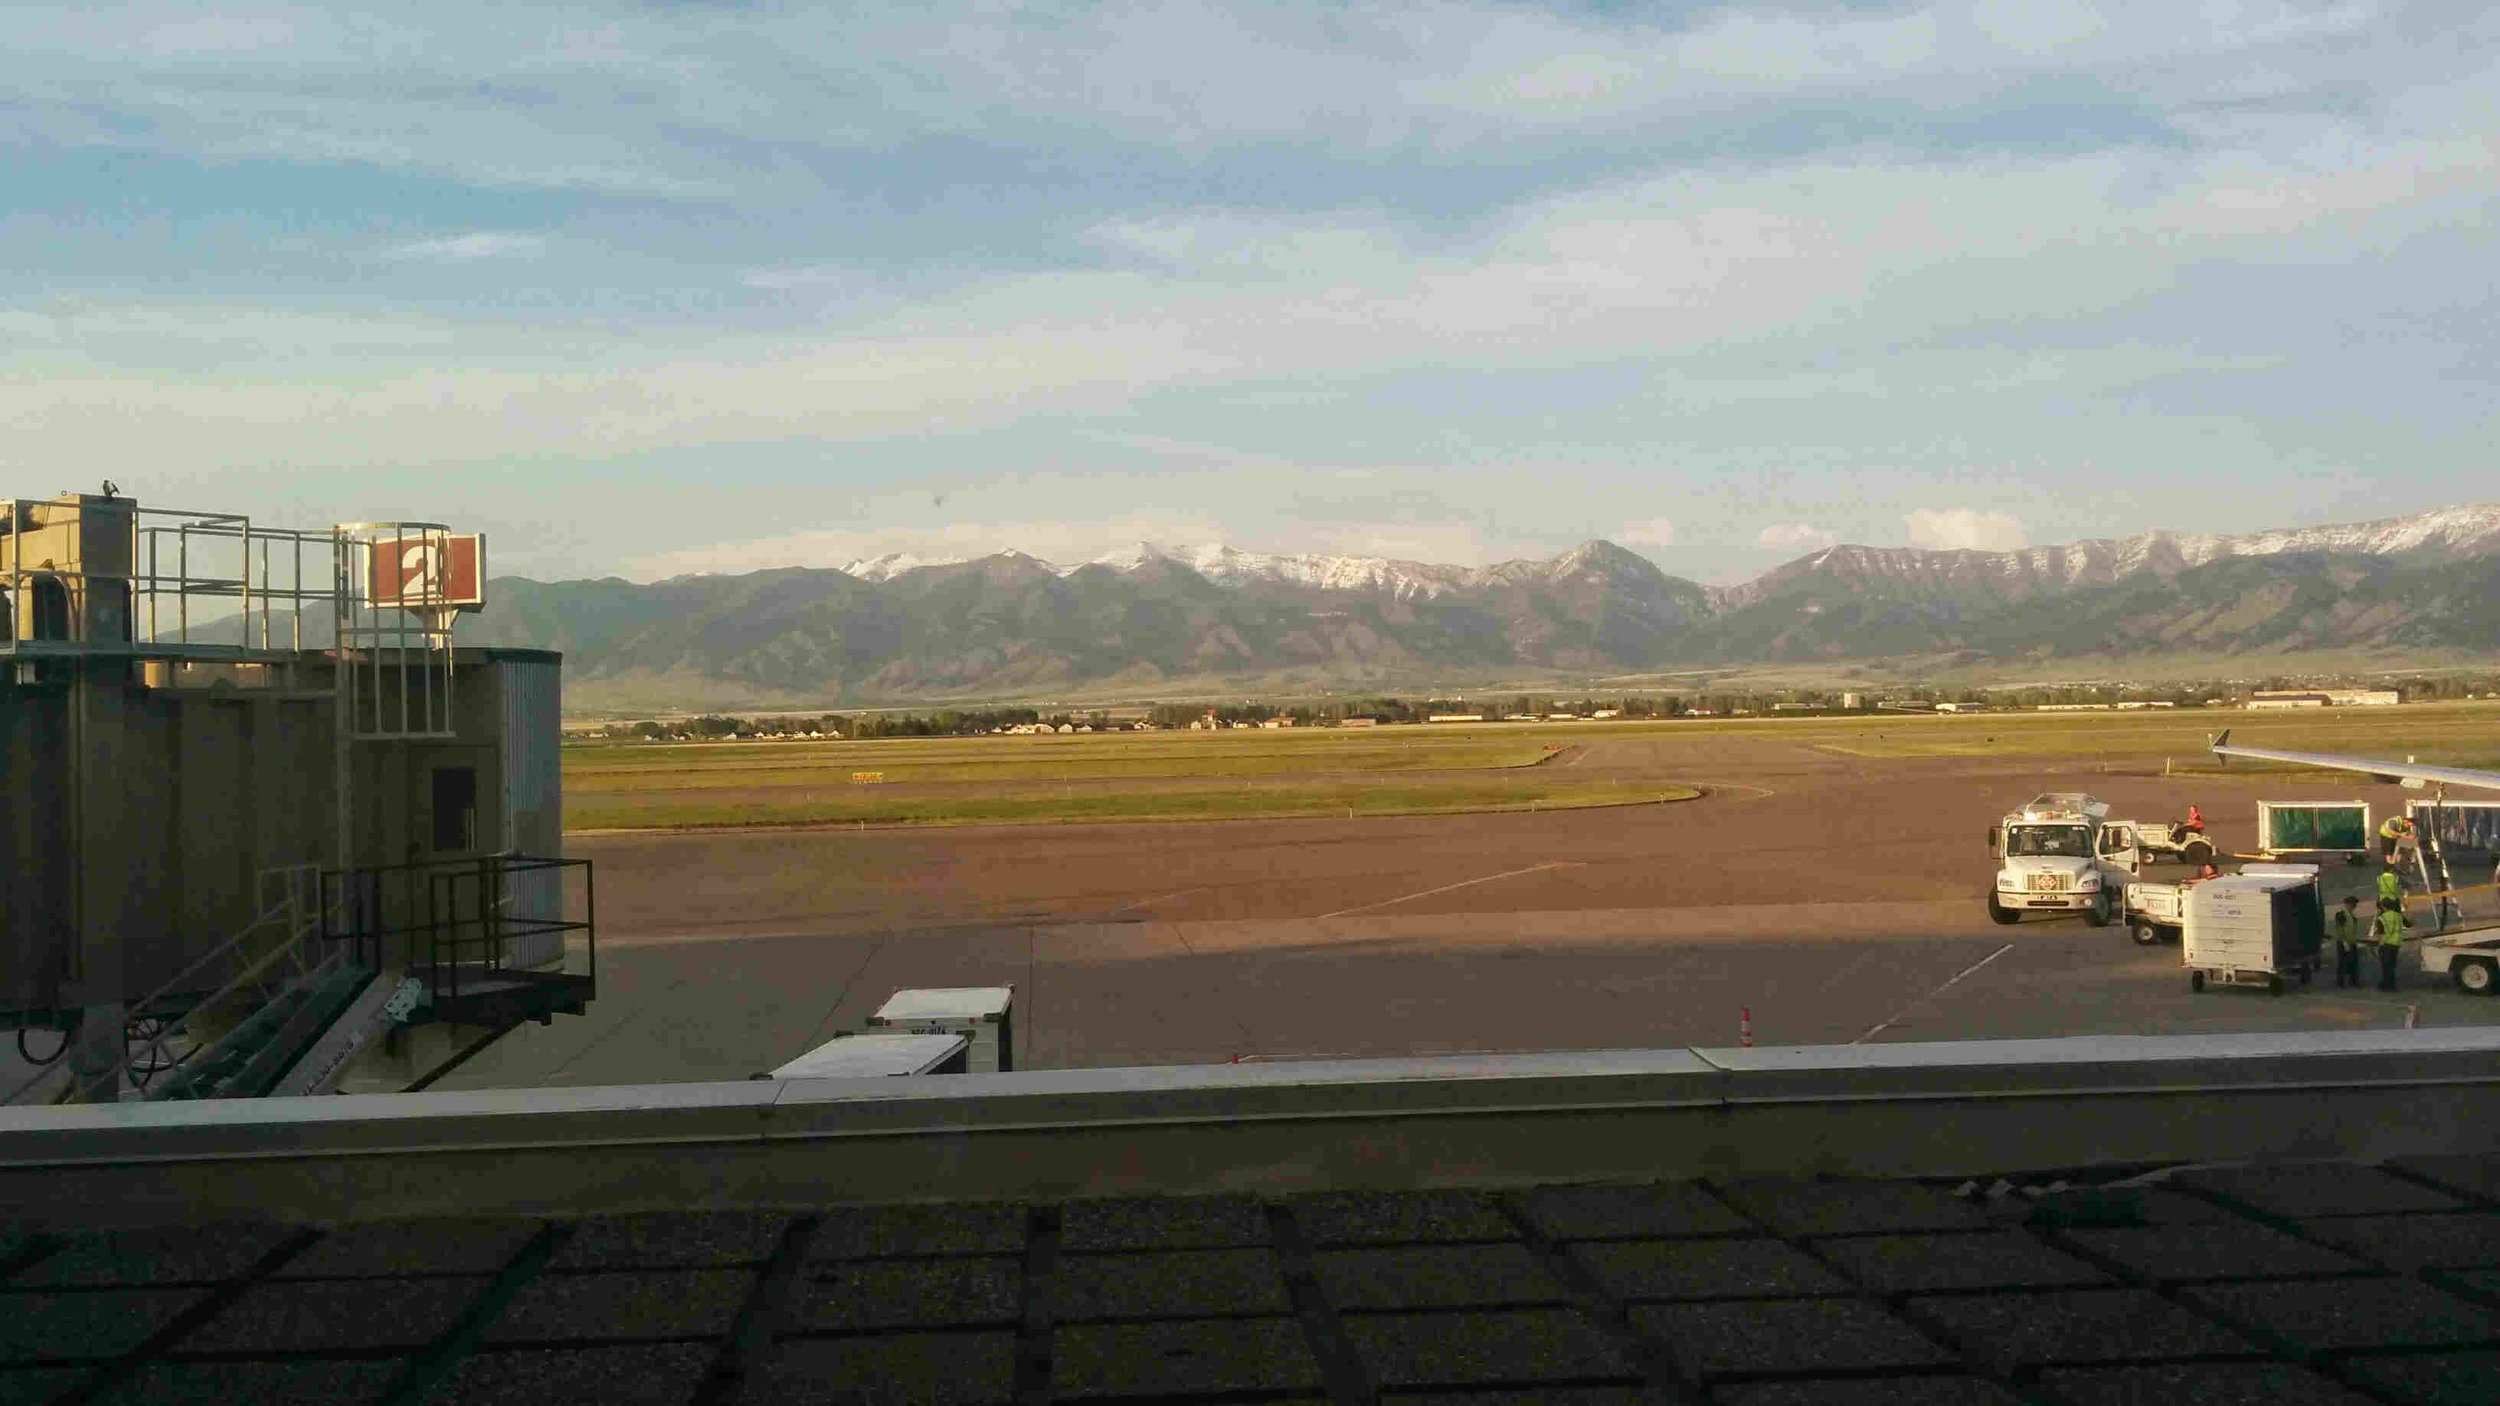 The view that greets you at the Bozeman airport